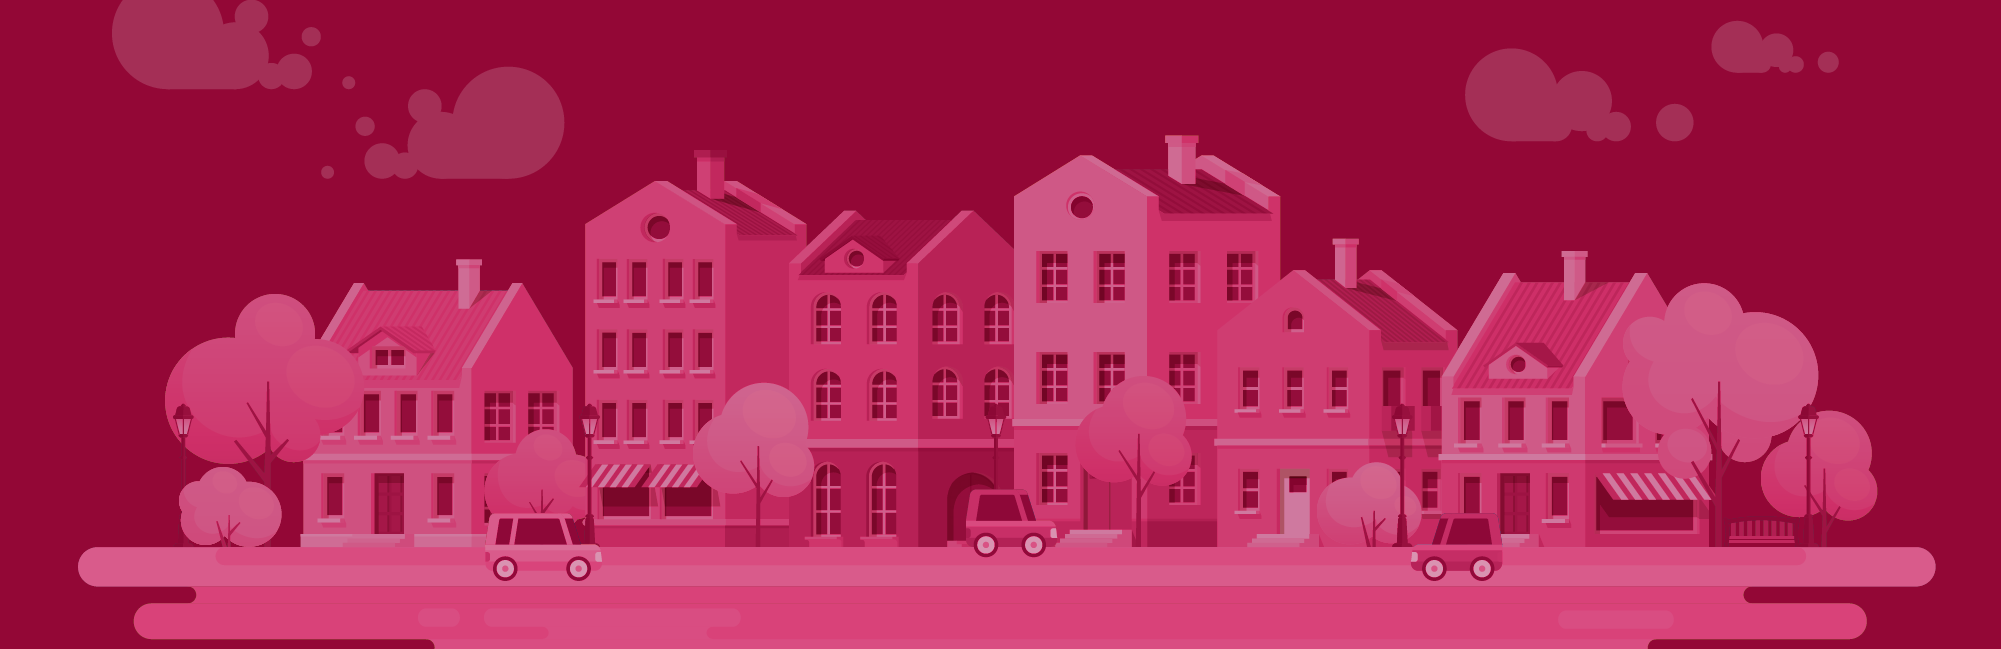 Illustration of a City in Pink